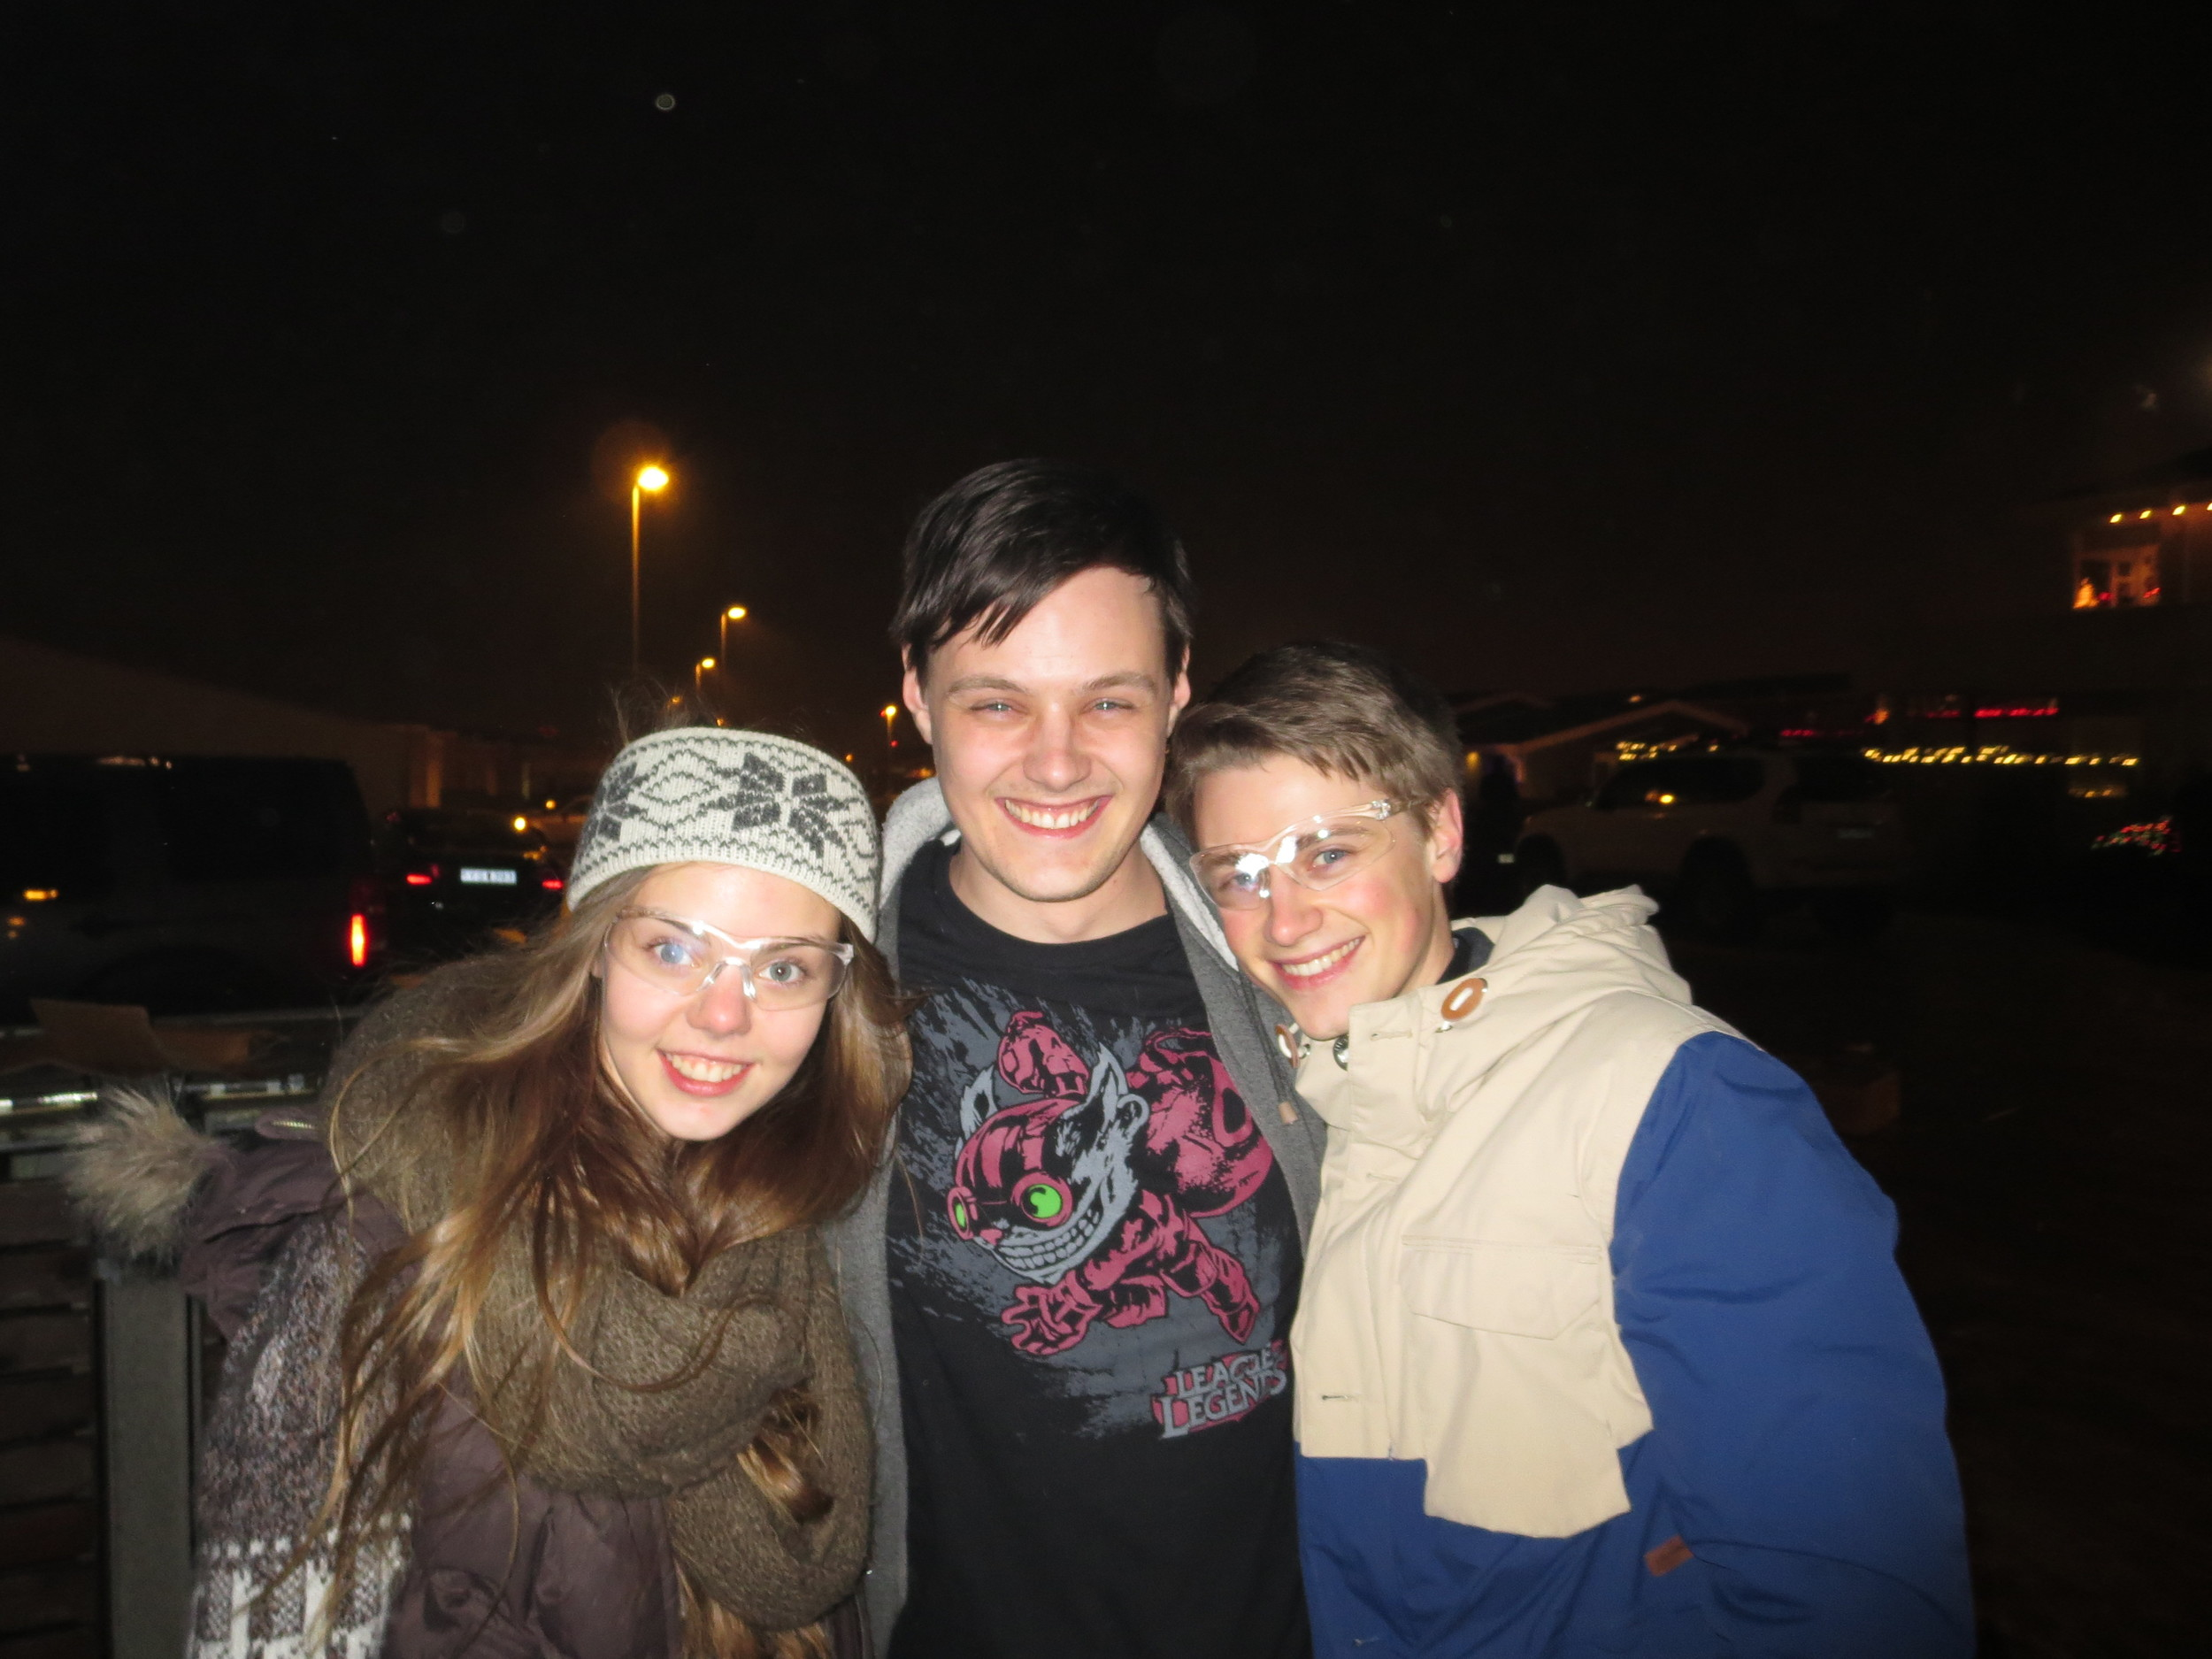 The siblings took time for one photo between fireworks